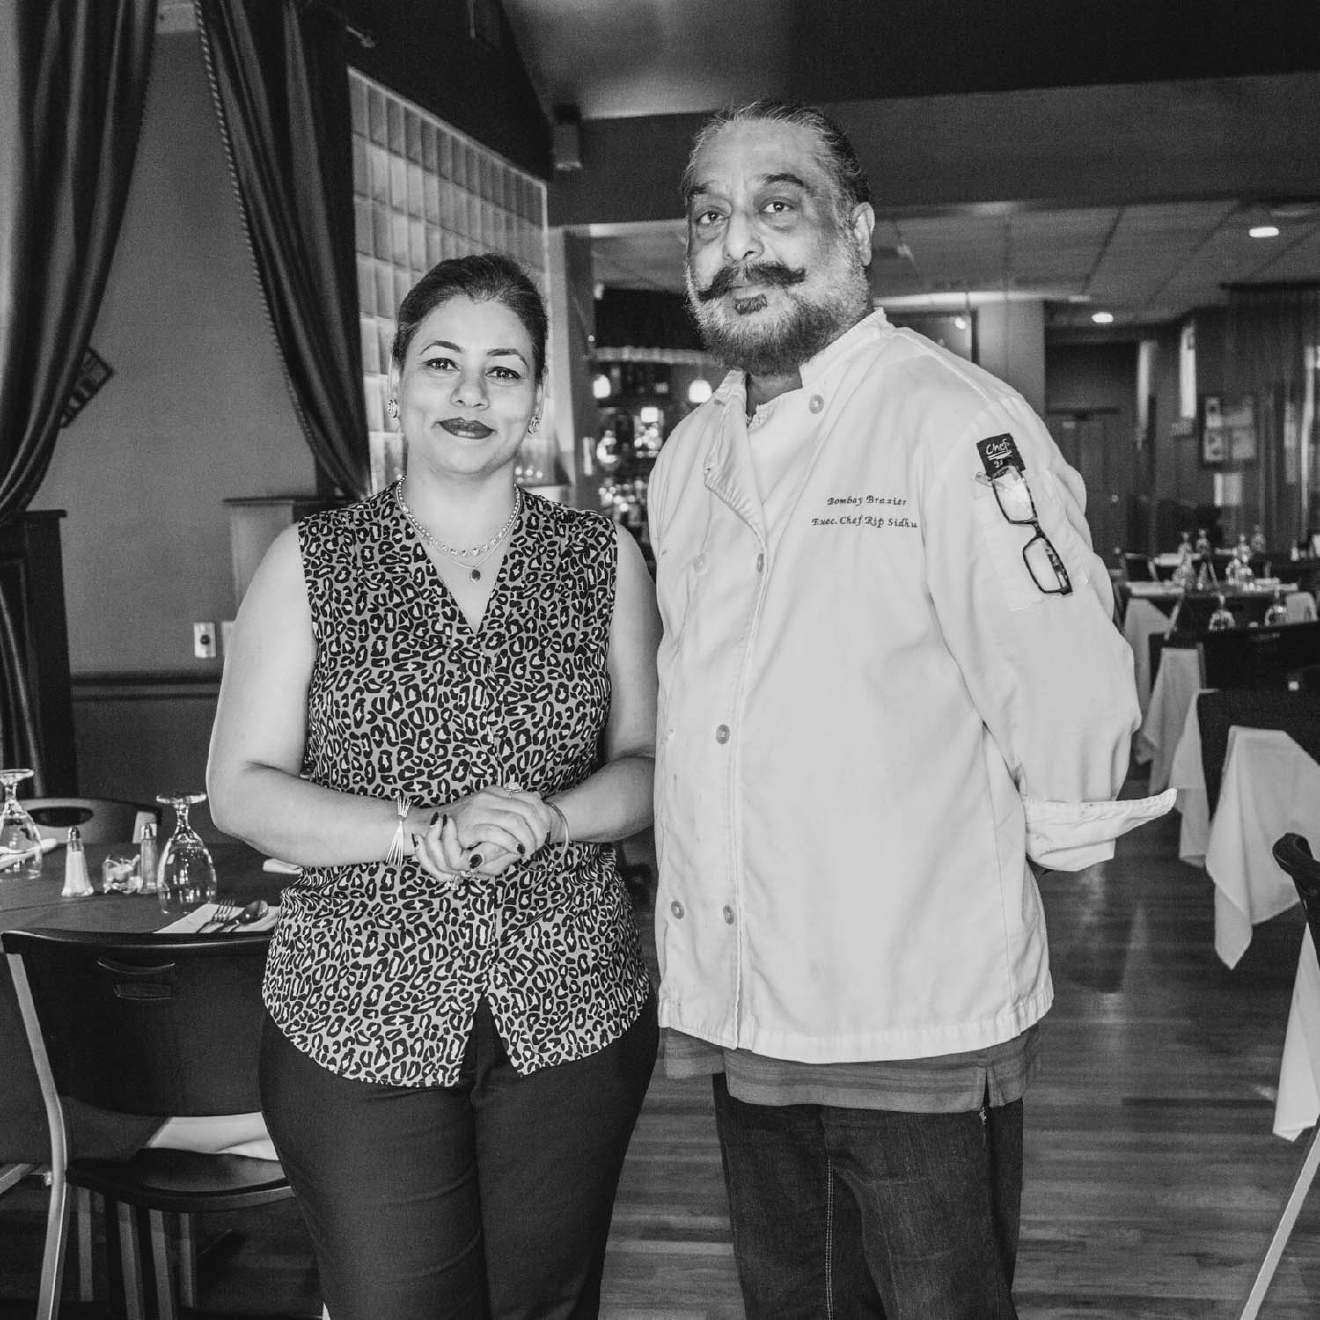 G. Sidhu (Manager) and Rip Sidhu (Chef) / Image: Catherine Viox / Published: 11.4.16